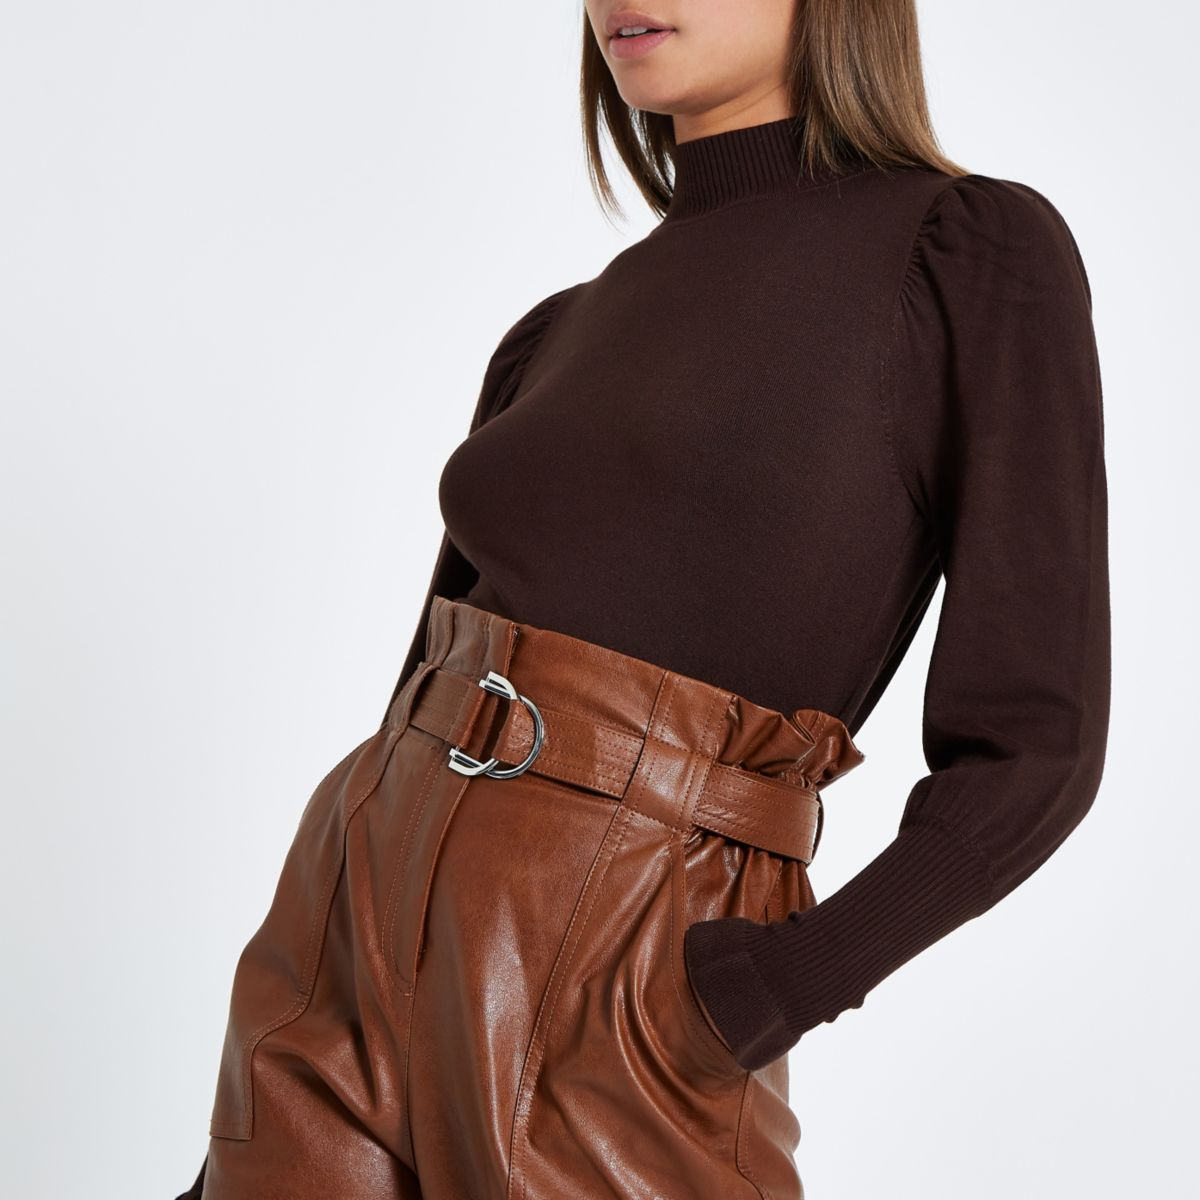 Brown turtle neck long sleeve sweater